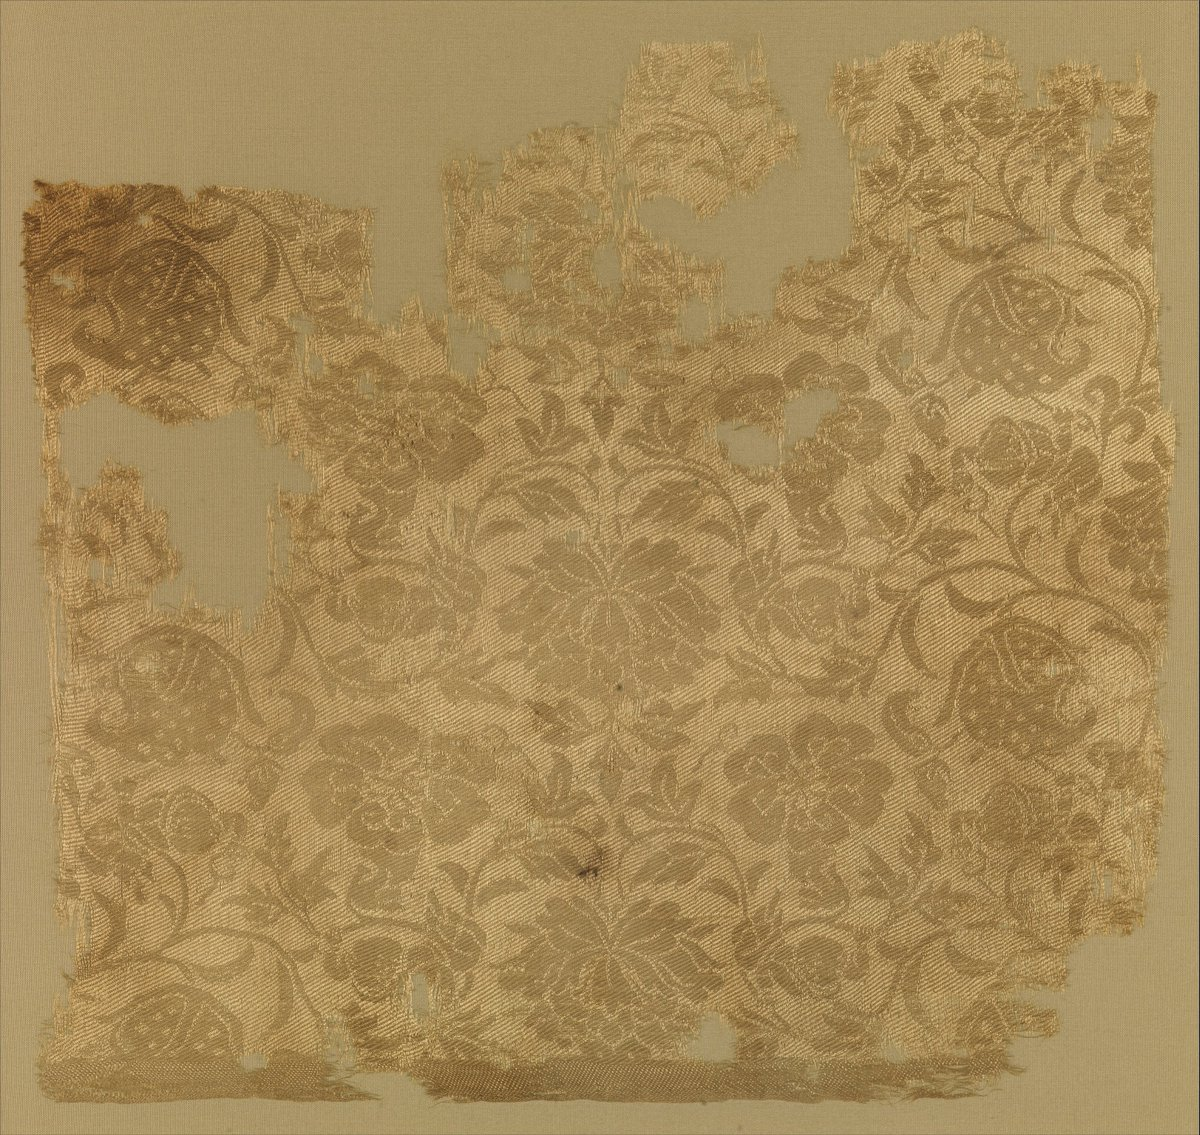 Textile fragment with boys in floral scrolls - so similar to the key image, huh?